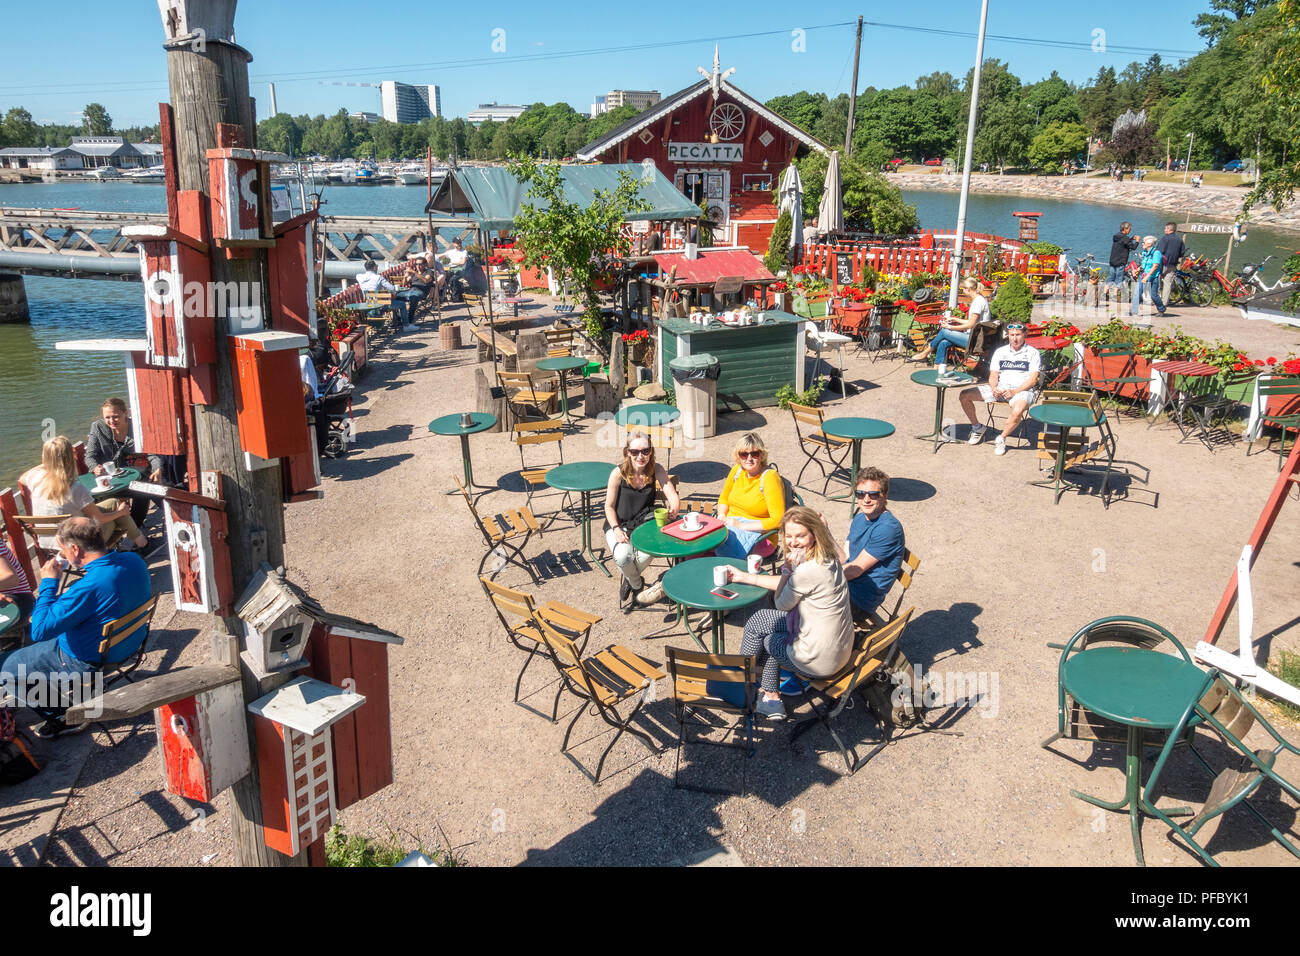 https://c7.alamy.com/comp/PFBYK1/caf-regatta-helsinki-a-quirky-little-waterfront-caf-restaurant-with-a-lovely-outside-terrace-in-helsinki-finland-in-summer-PFBYK1.jpg